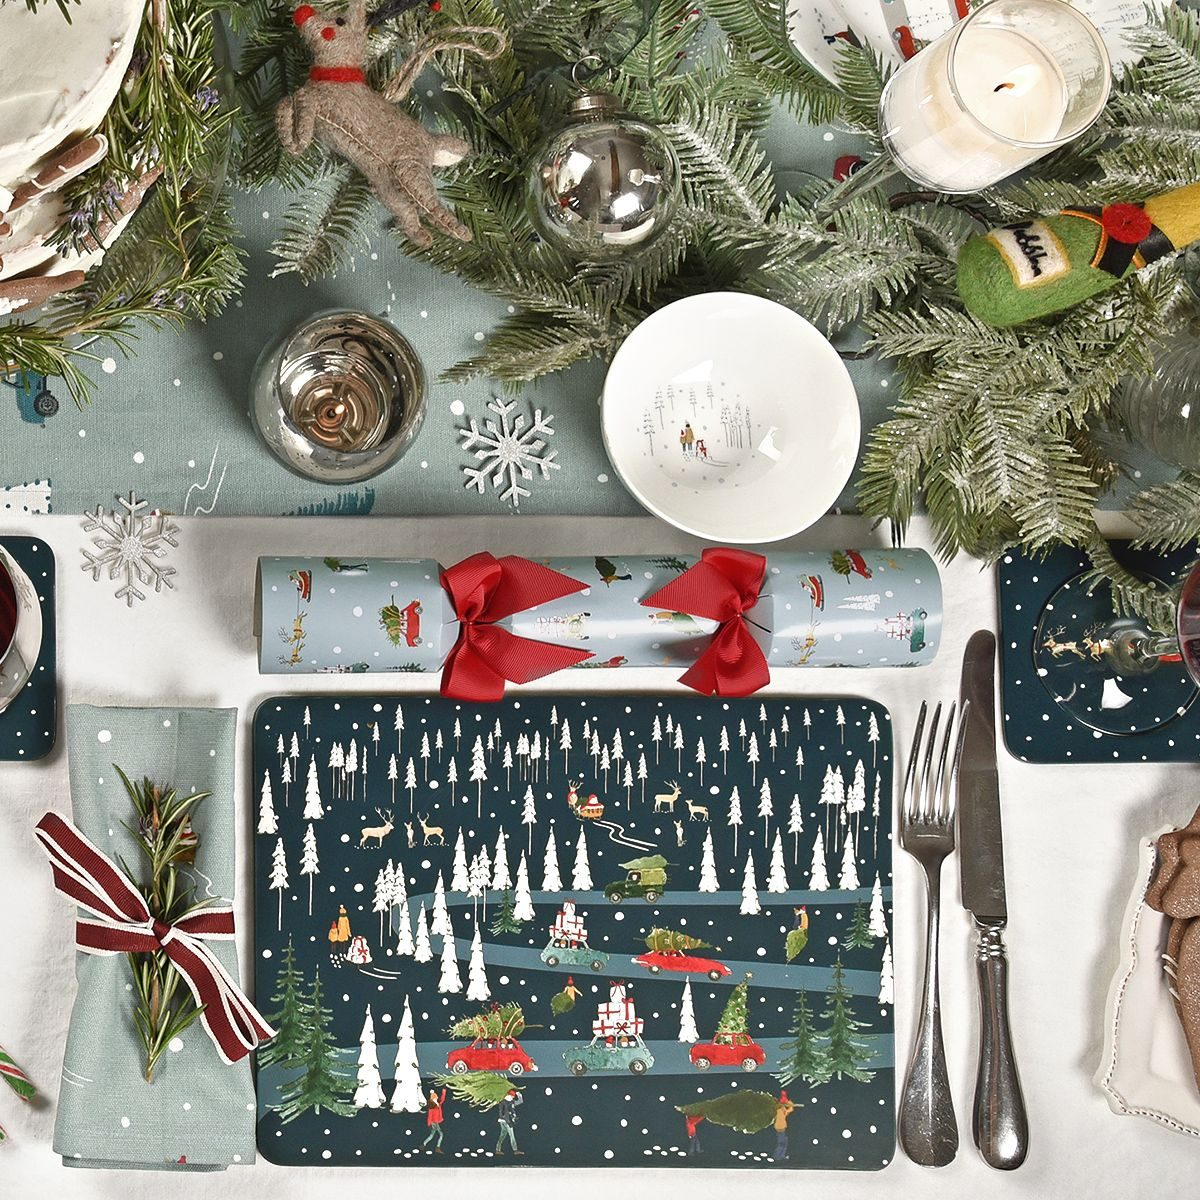 29sophie-allport-home-for-christmas-placemats-set-of-4-lifestyle-1200x1200.jpg